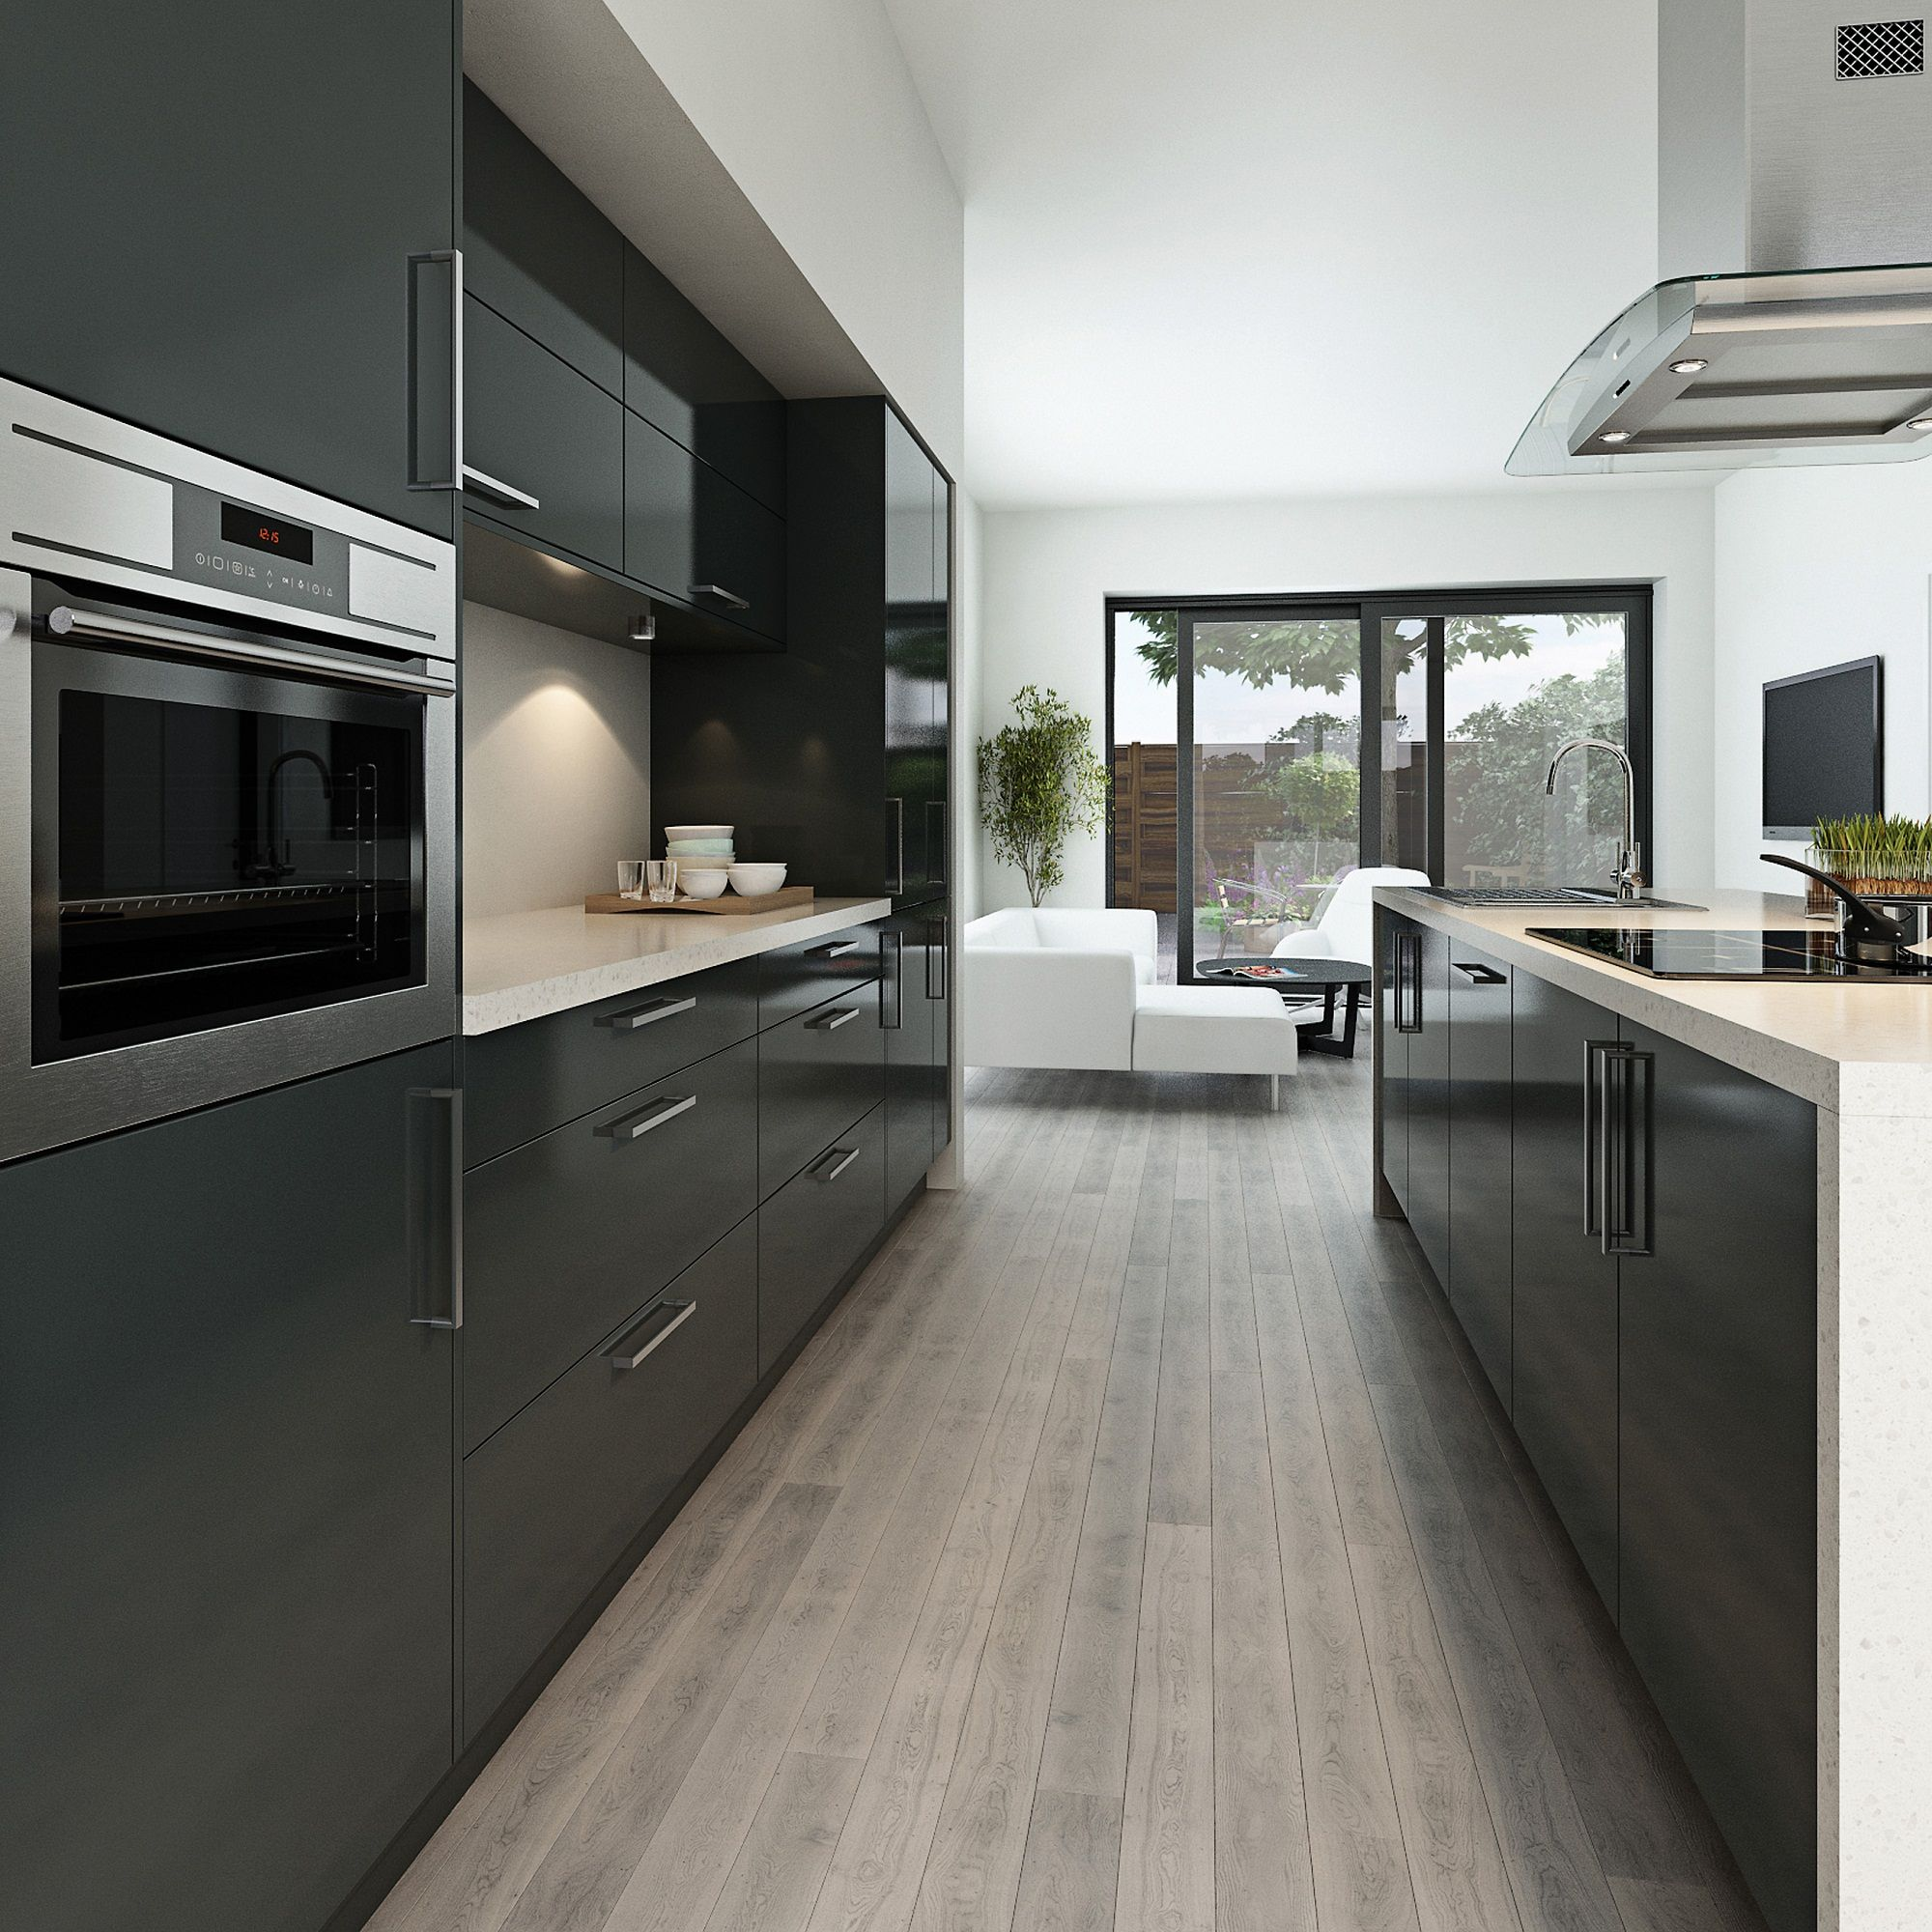 Maida gloss dark grey can create a modern look for any